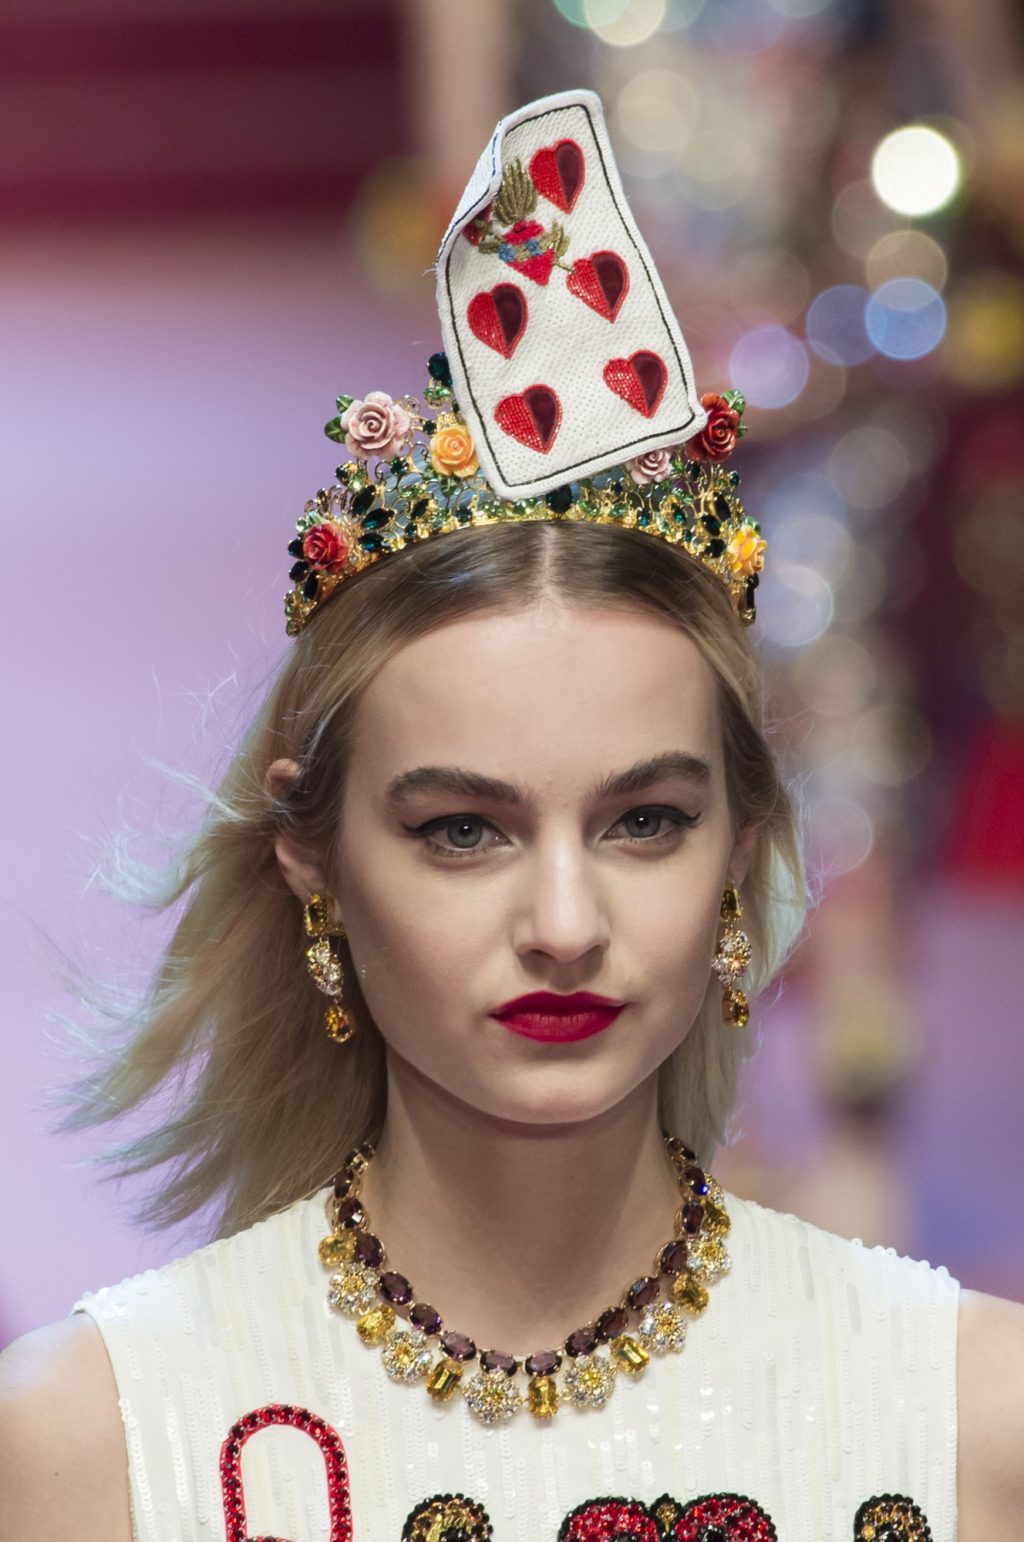 Dolce & Gabbana Steals Hearts with Its Spring/Summer 2018 Accessories